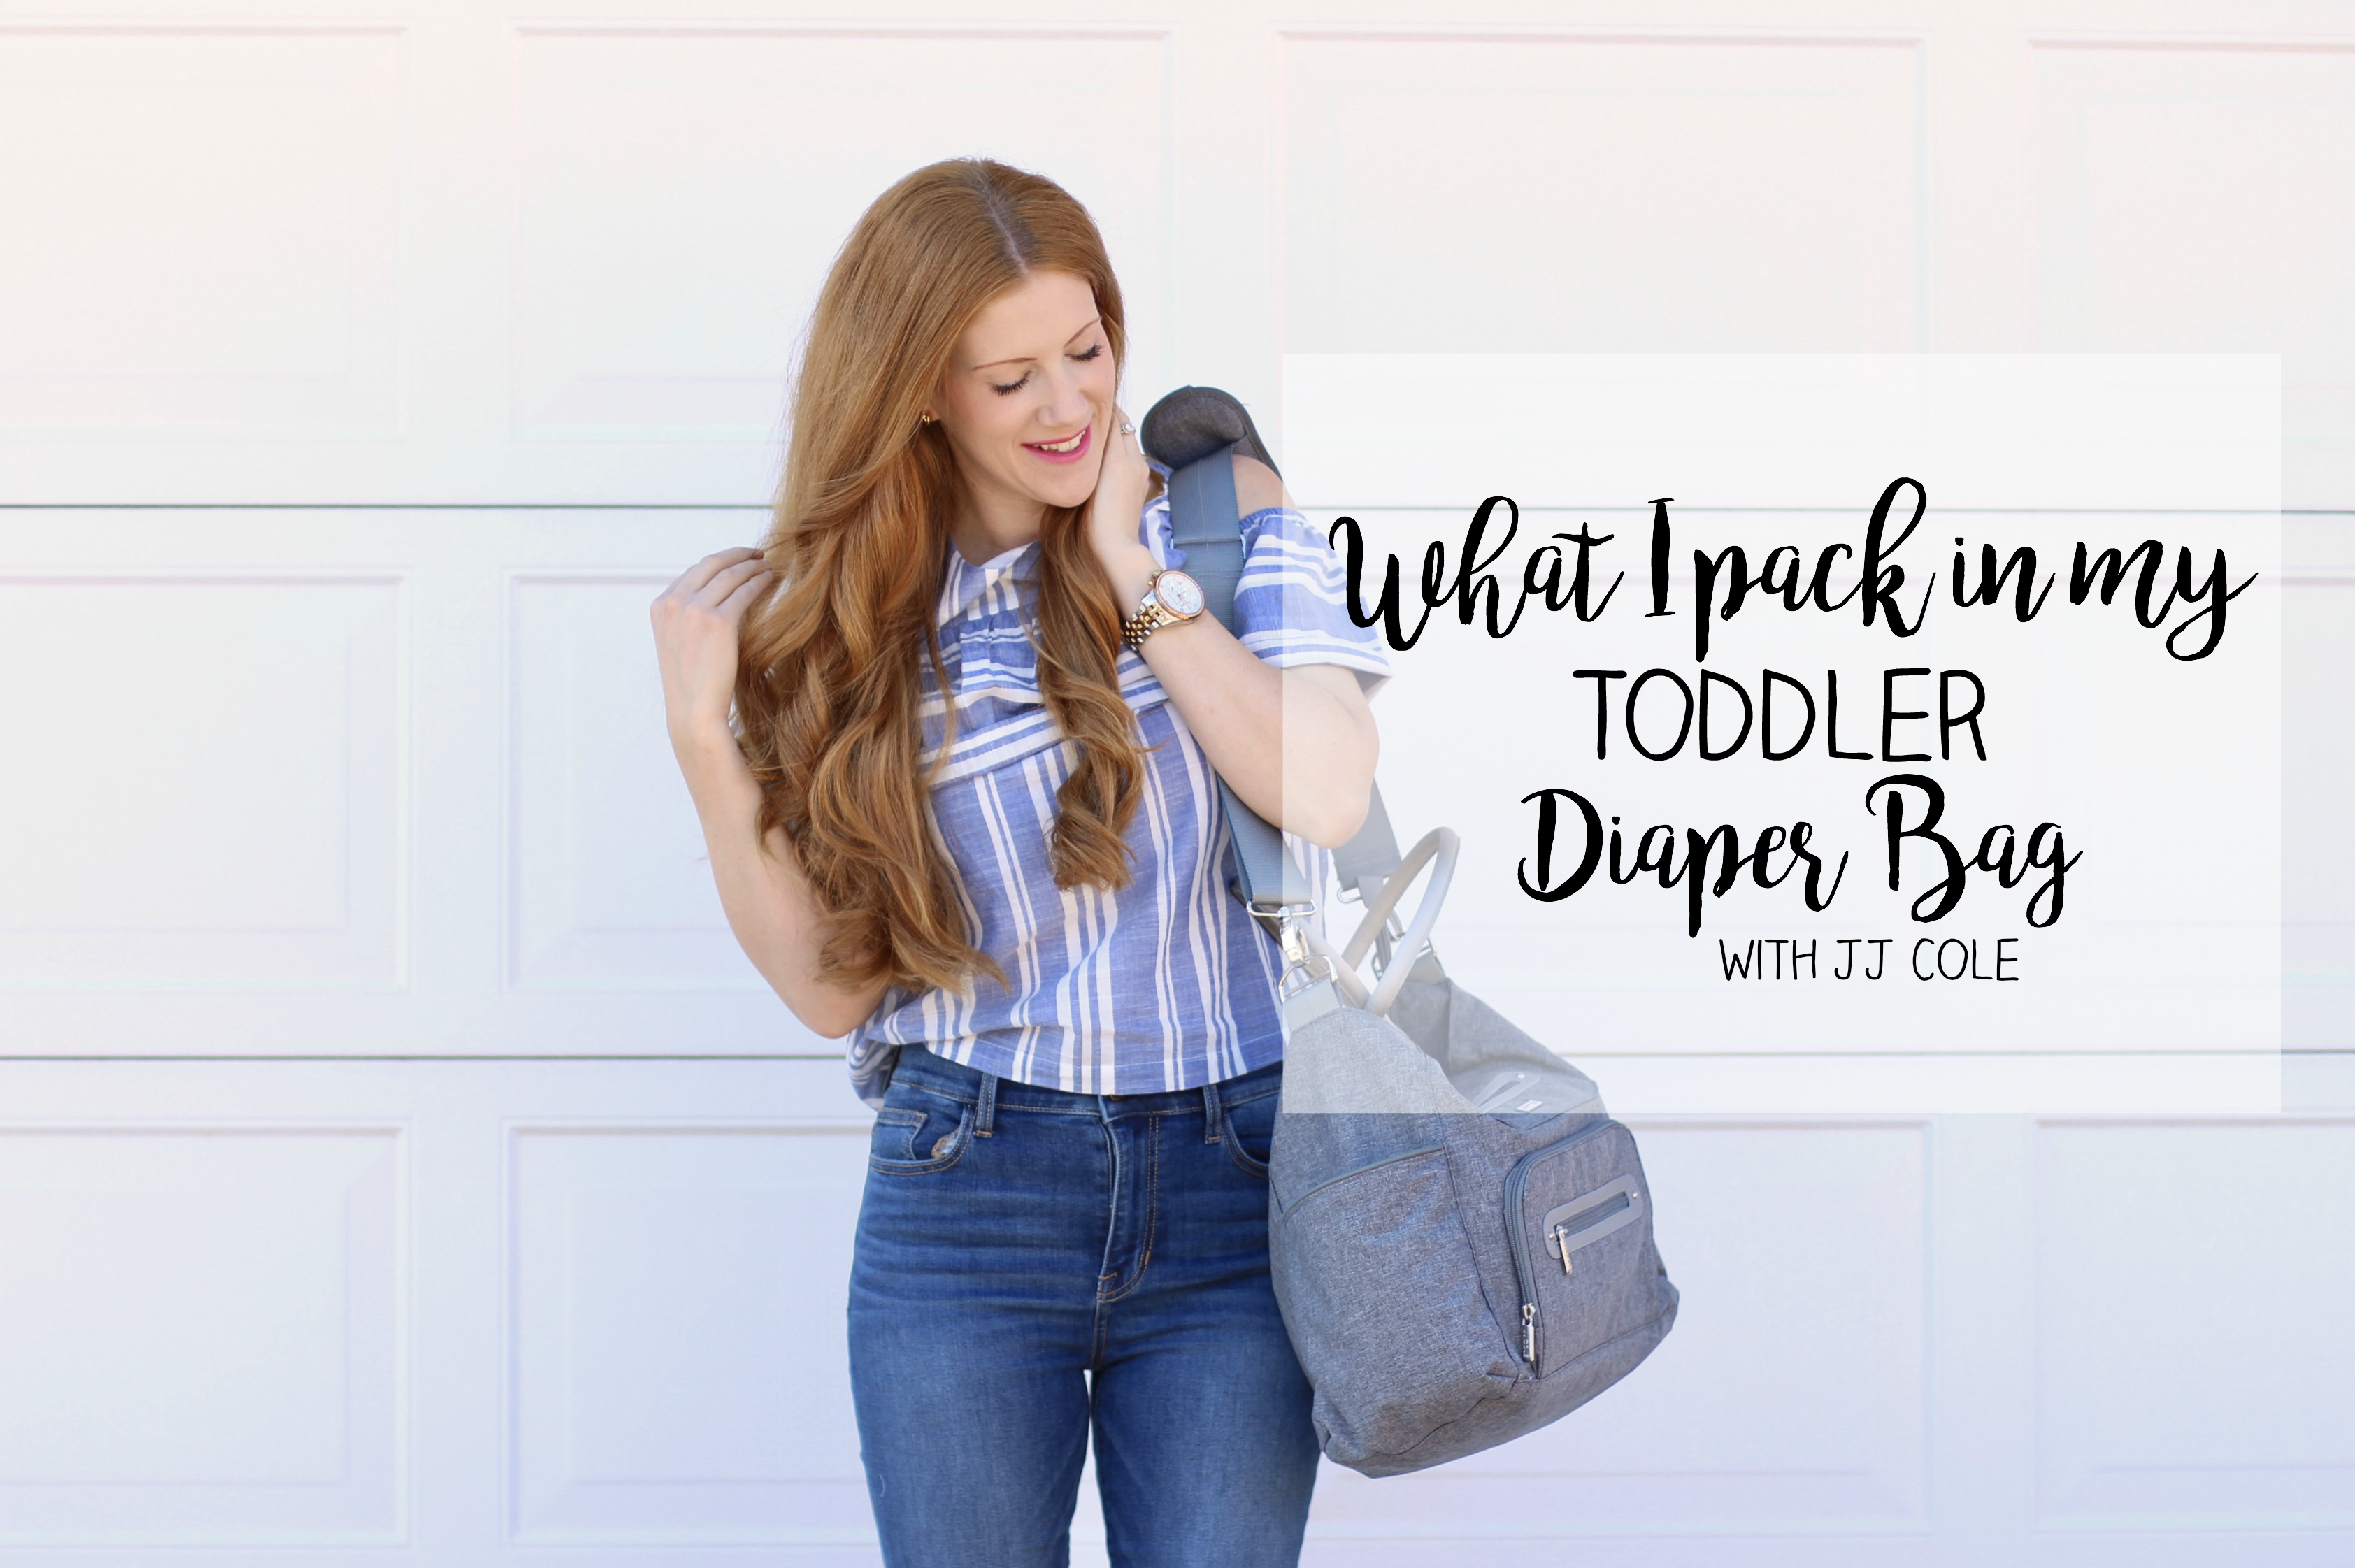 How I Pack My Toddler Diaper Bag with JJ Cole!